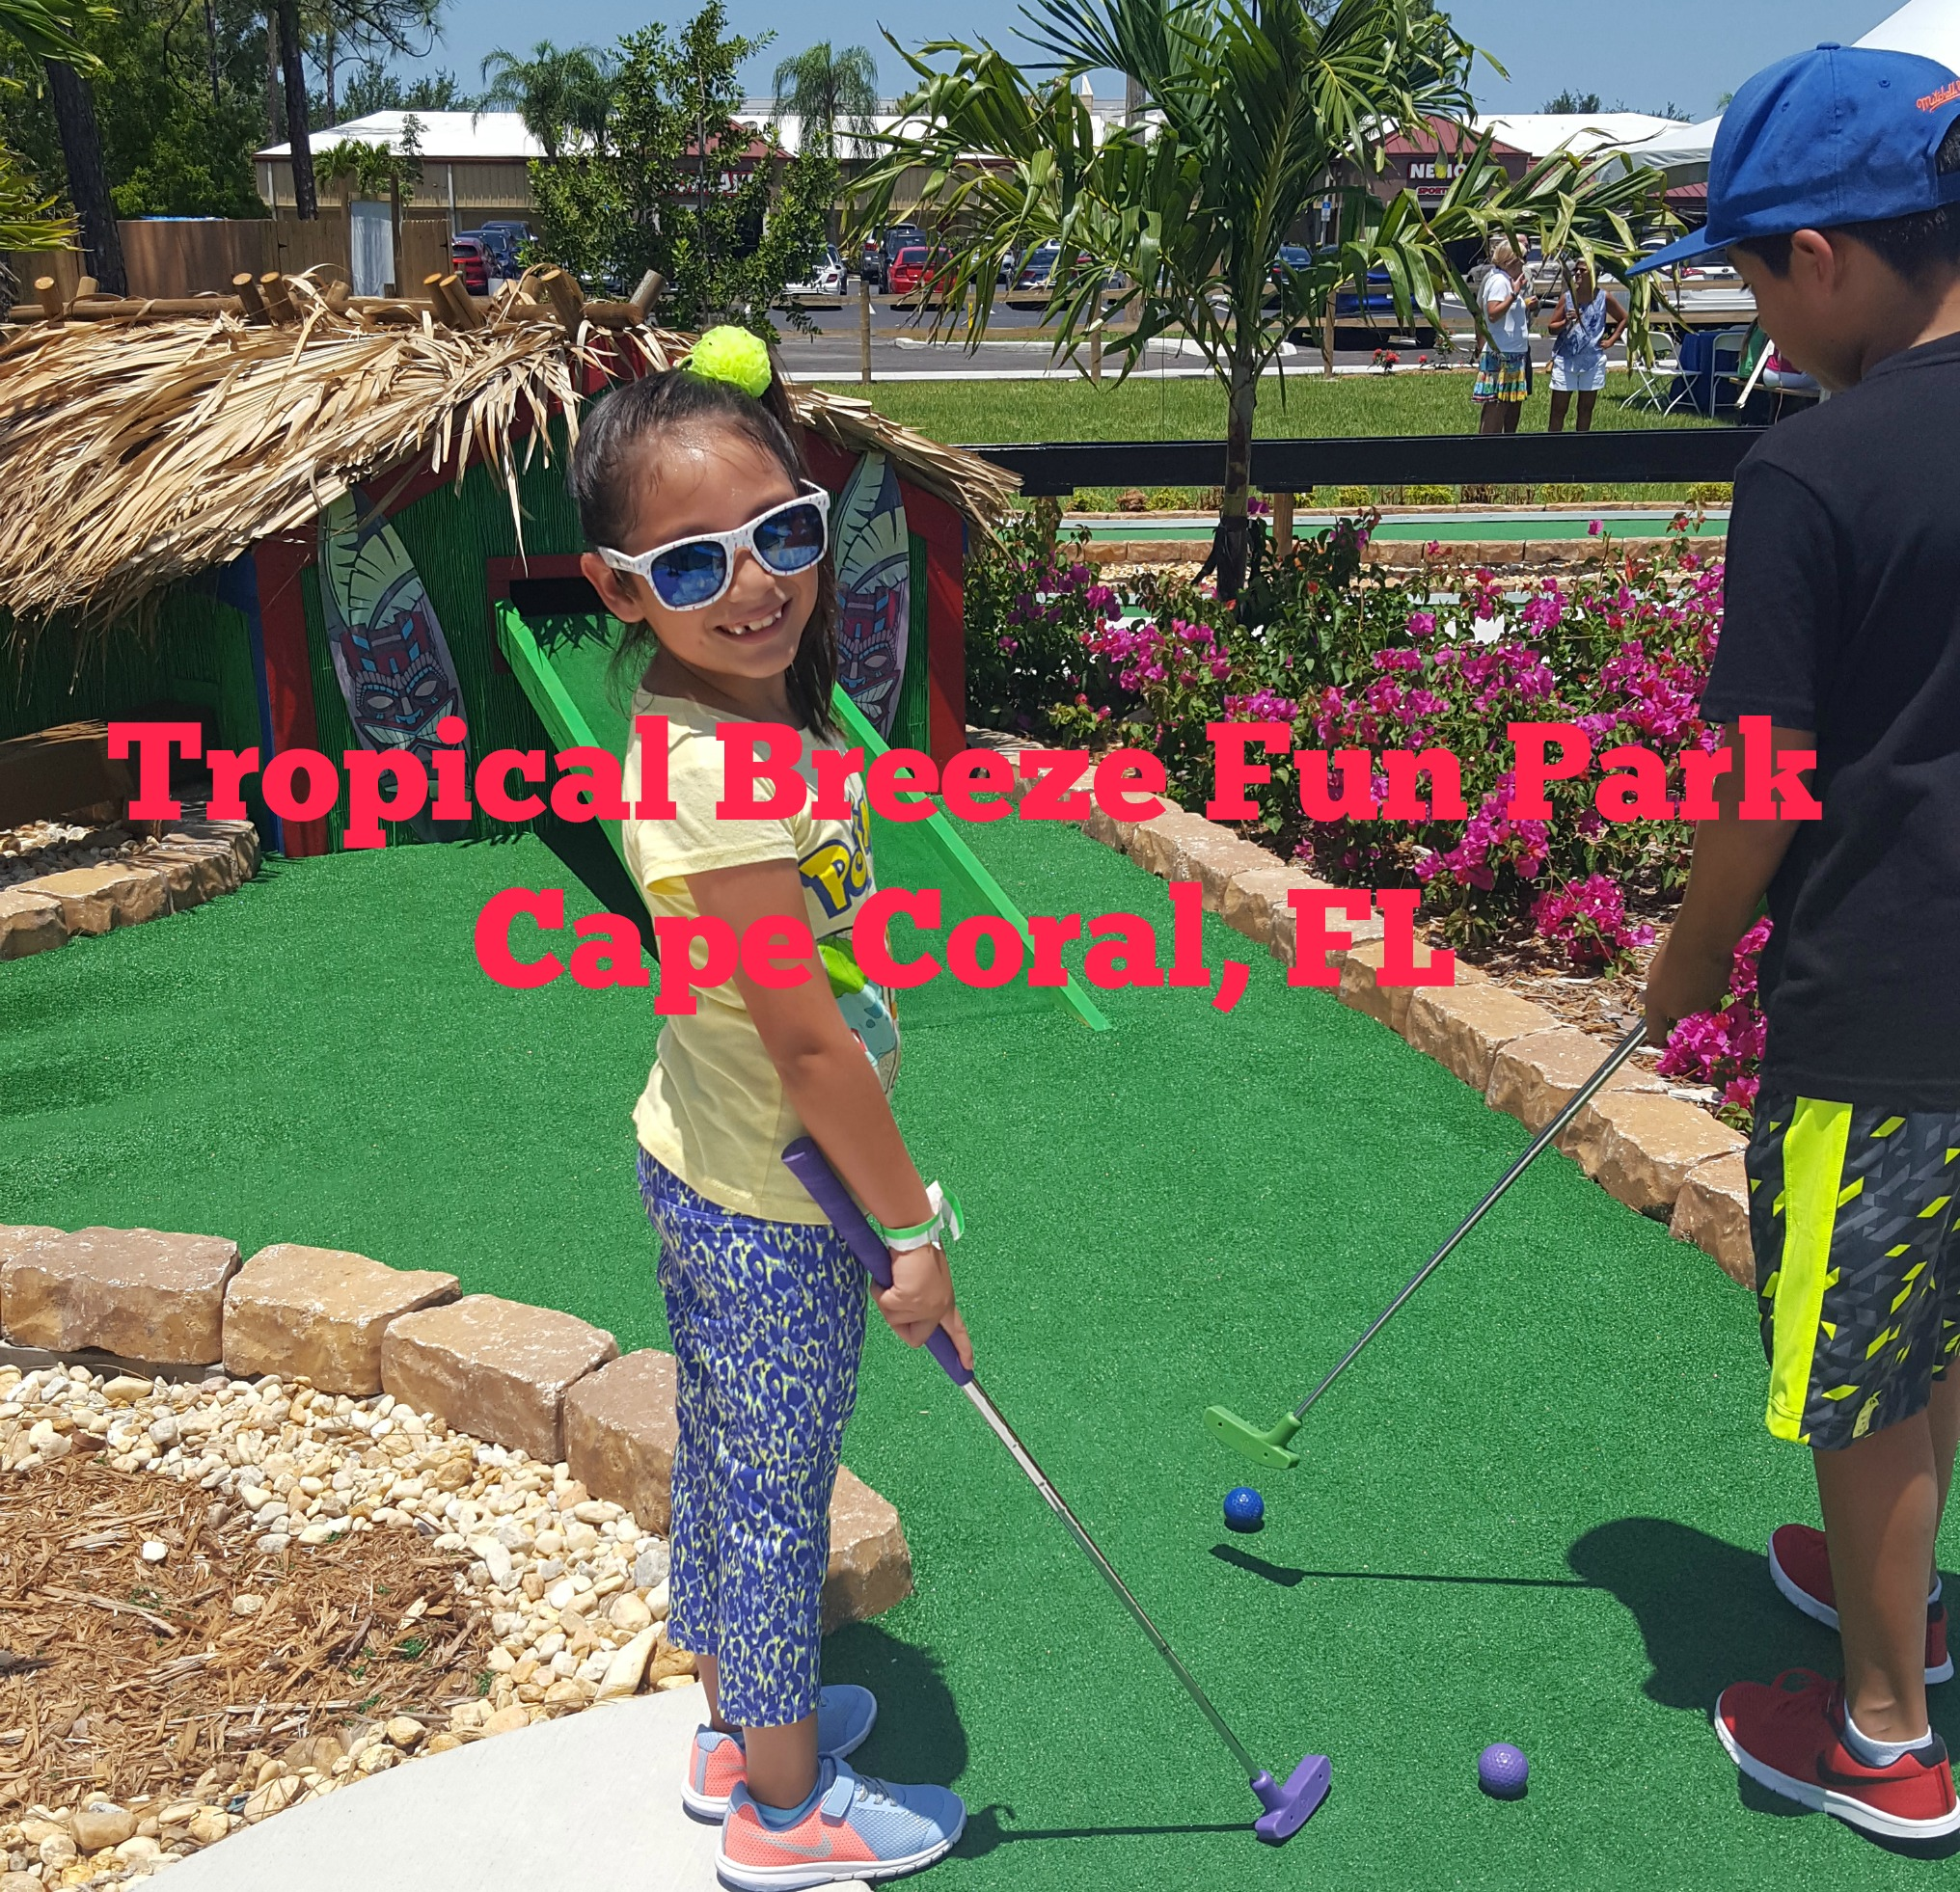 Tropical Breeze Fun Park brings Adventure to Cape Coral